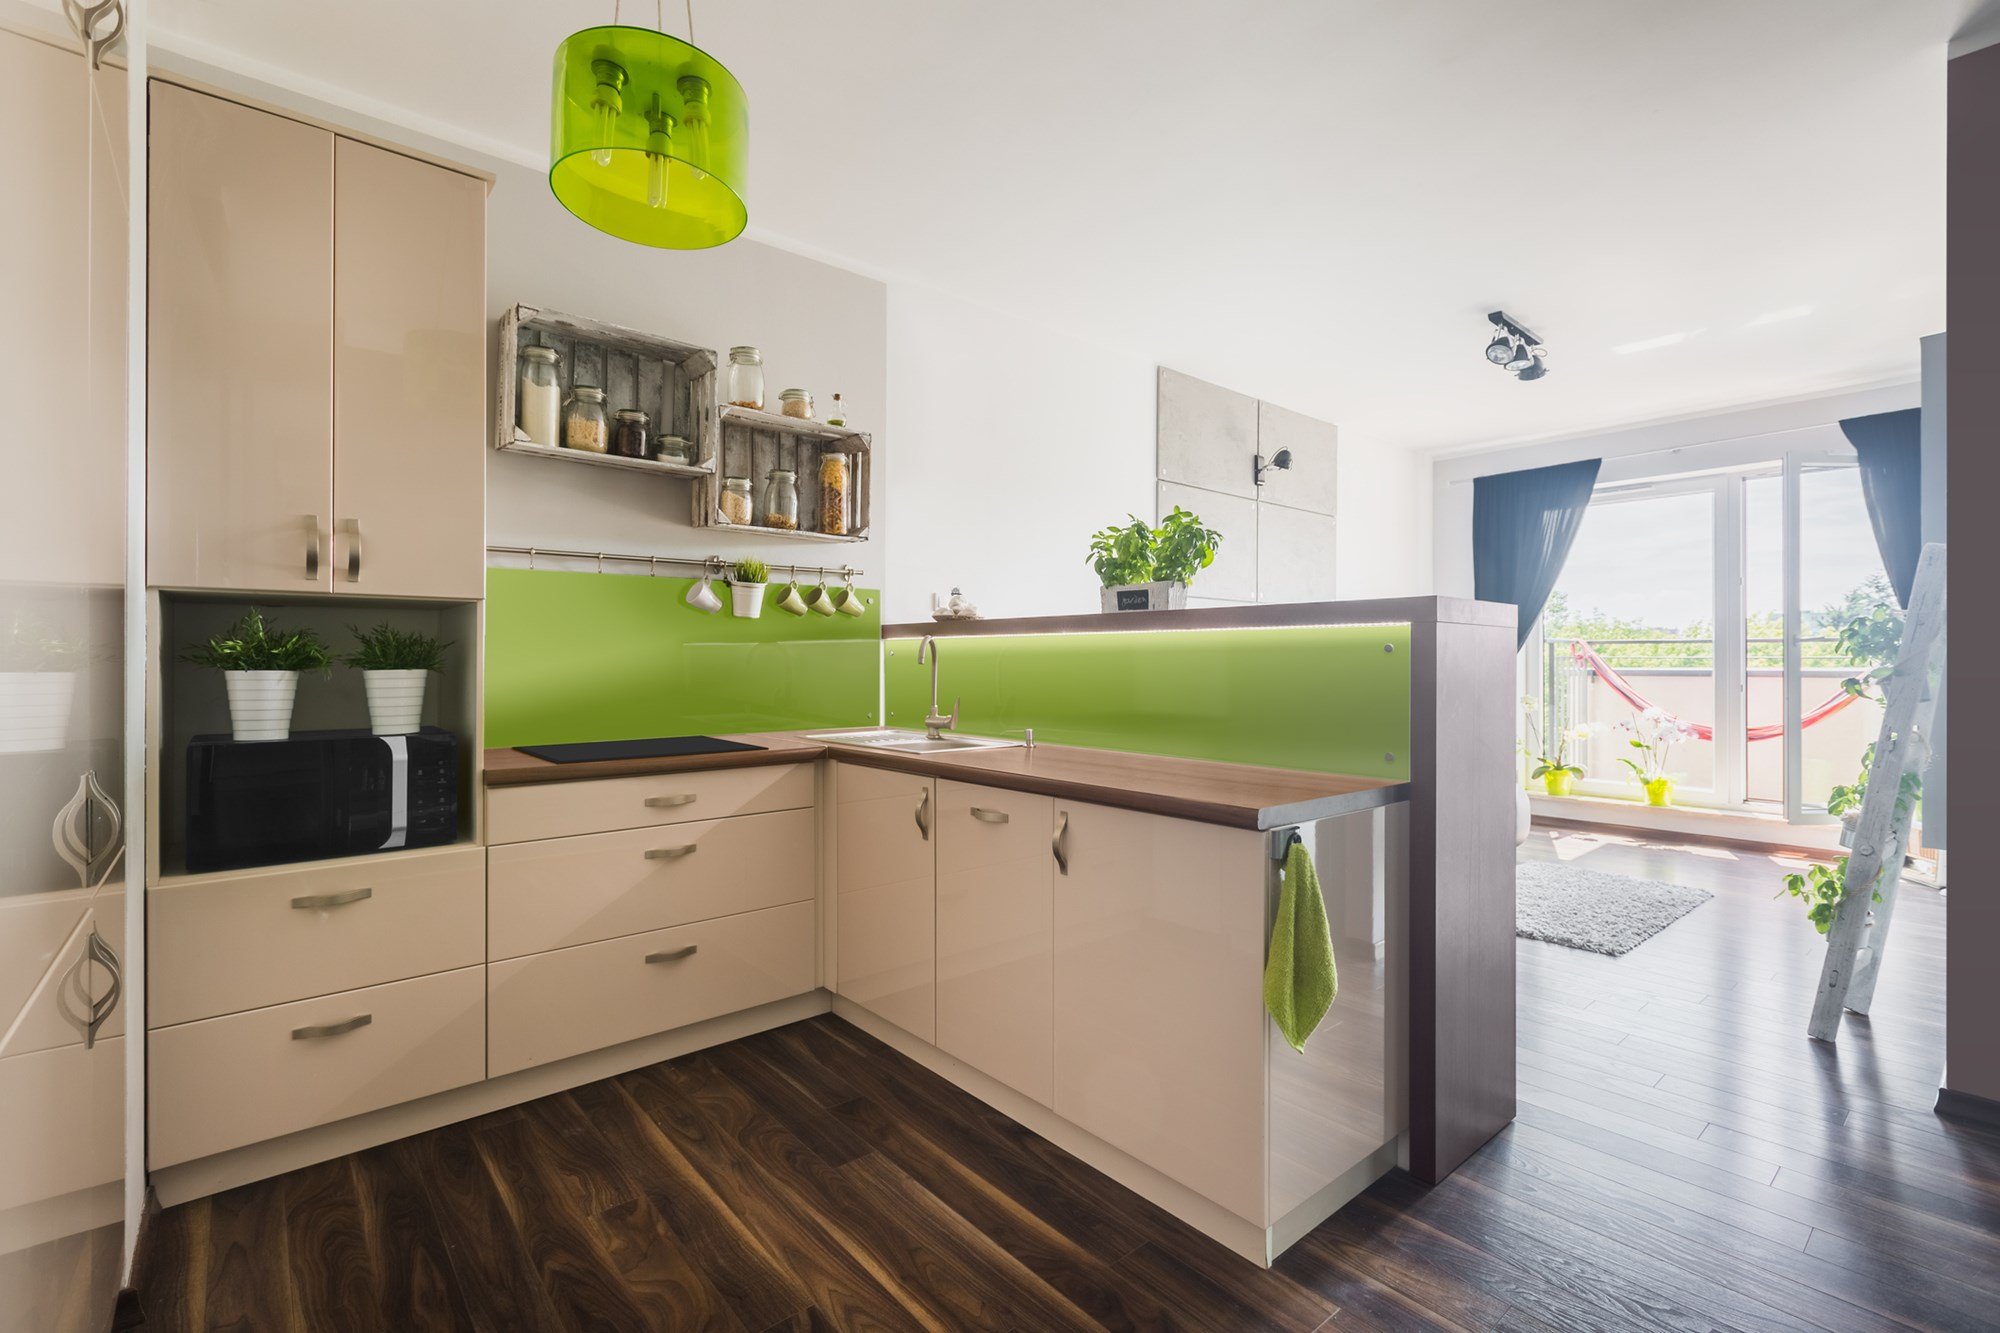 How To Make The Most Of A Small Kitchen Space Itu0027s About Finding The Right  Sized Appliances